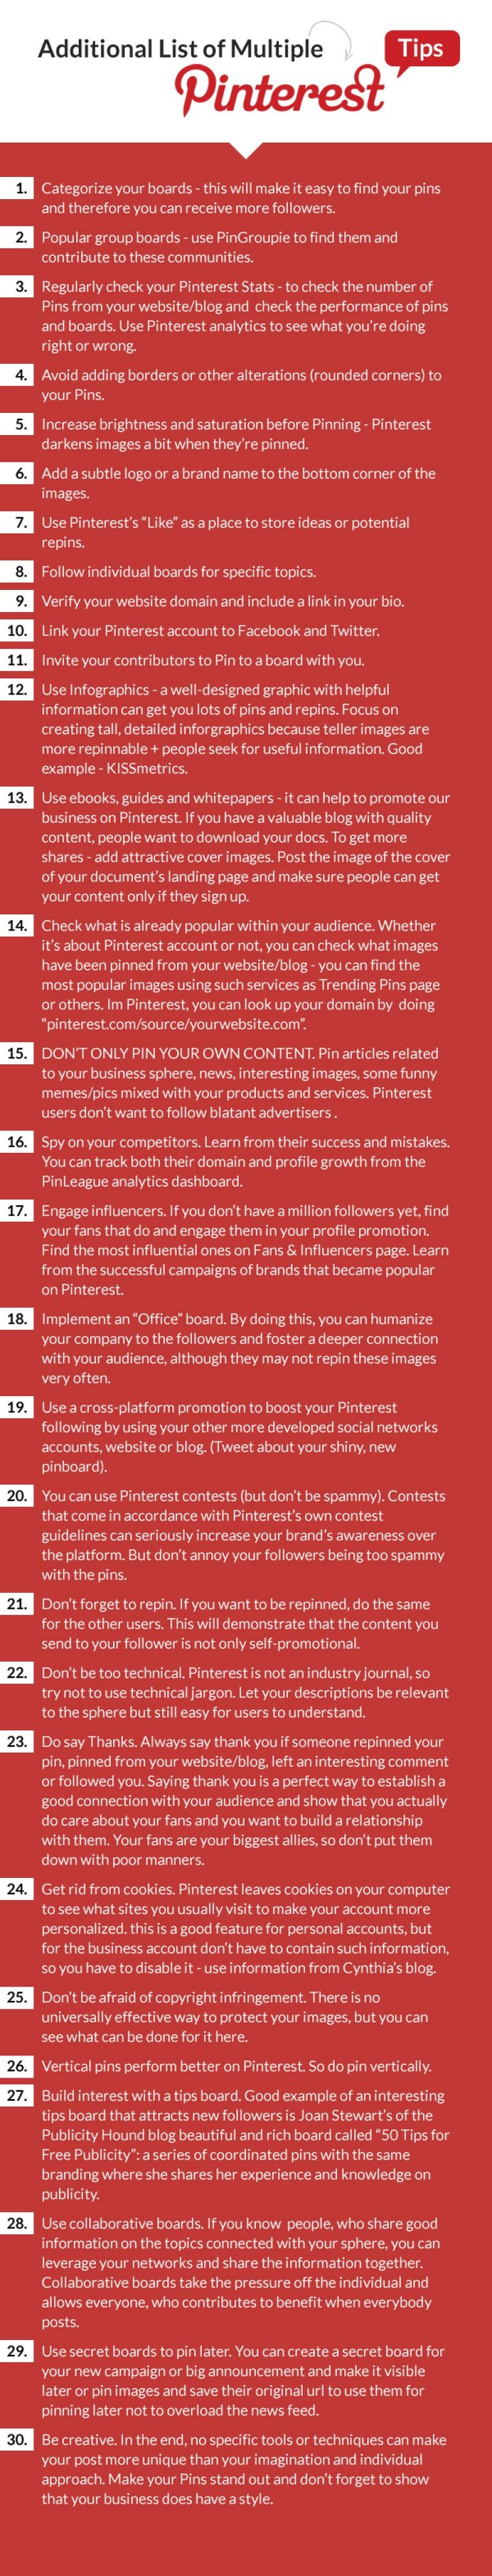 Cool! Social Media Marketing Infographic Aug 2016                                                                                                                                                                                 More